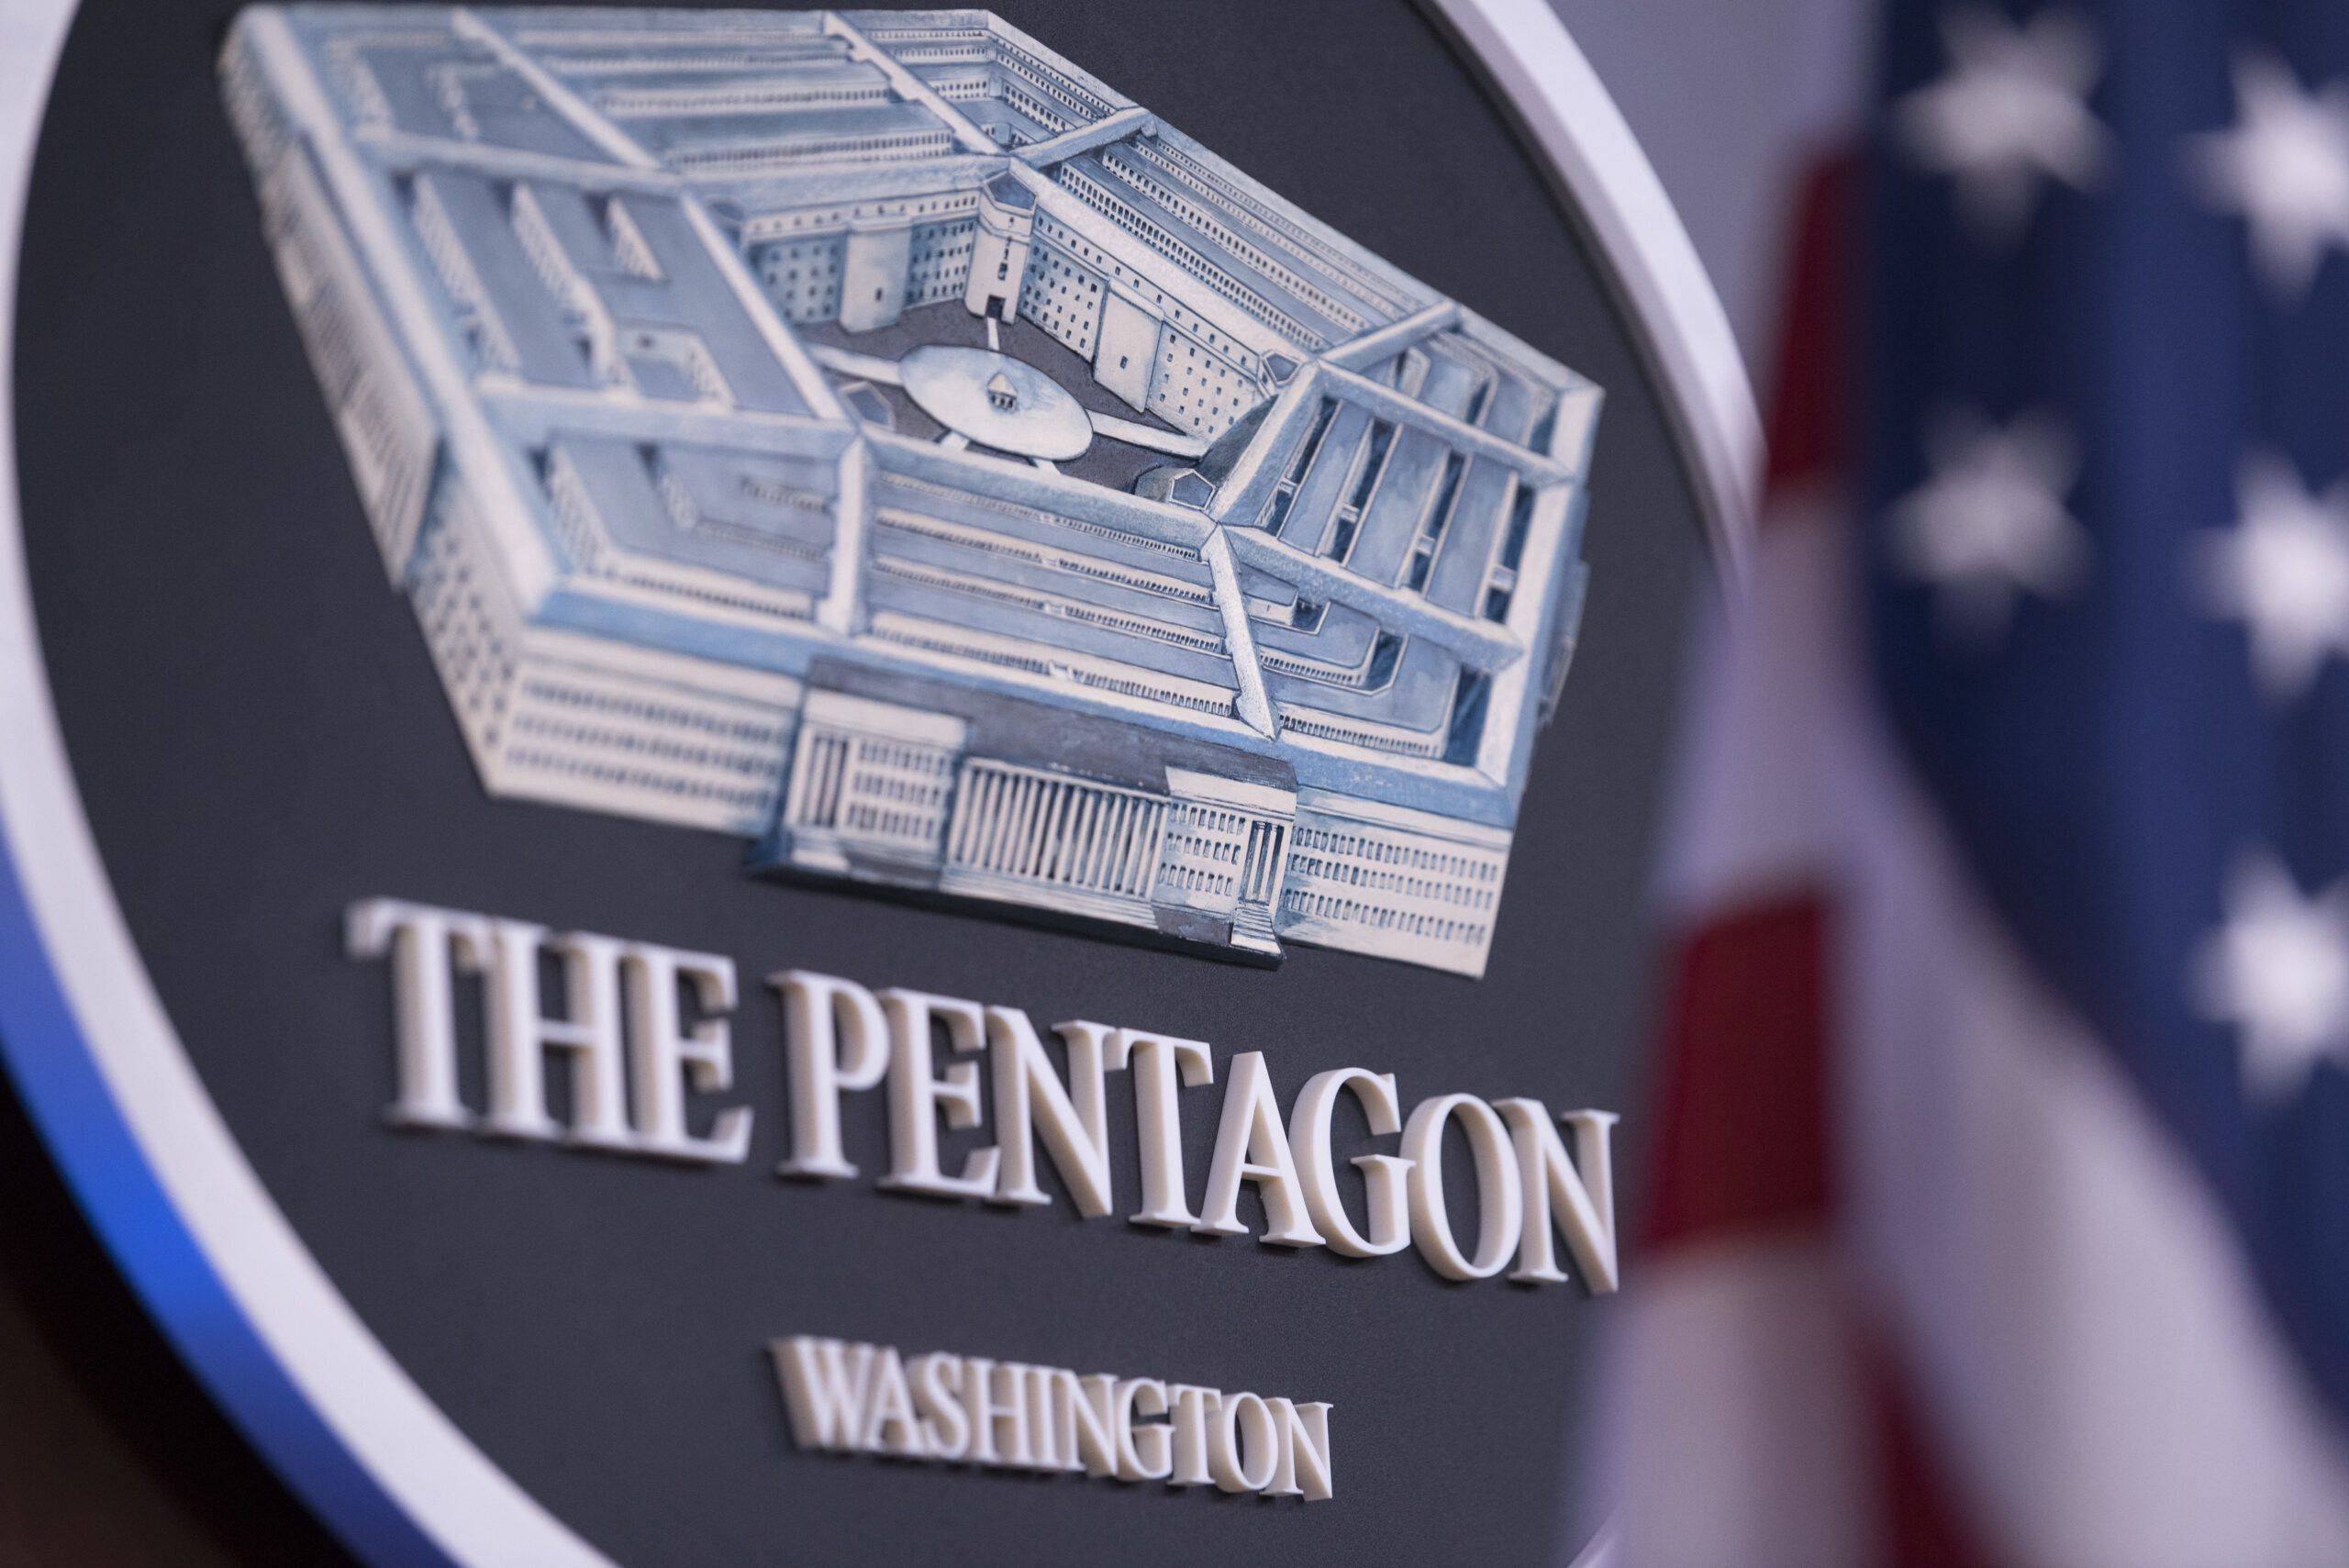 The Pentagon Press Briefing Room